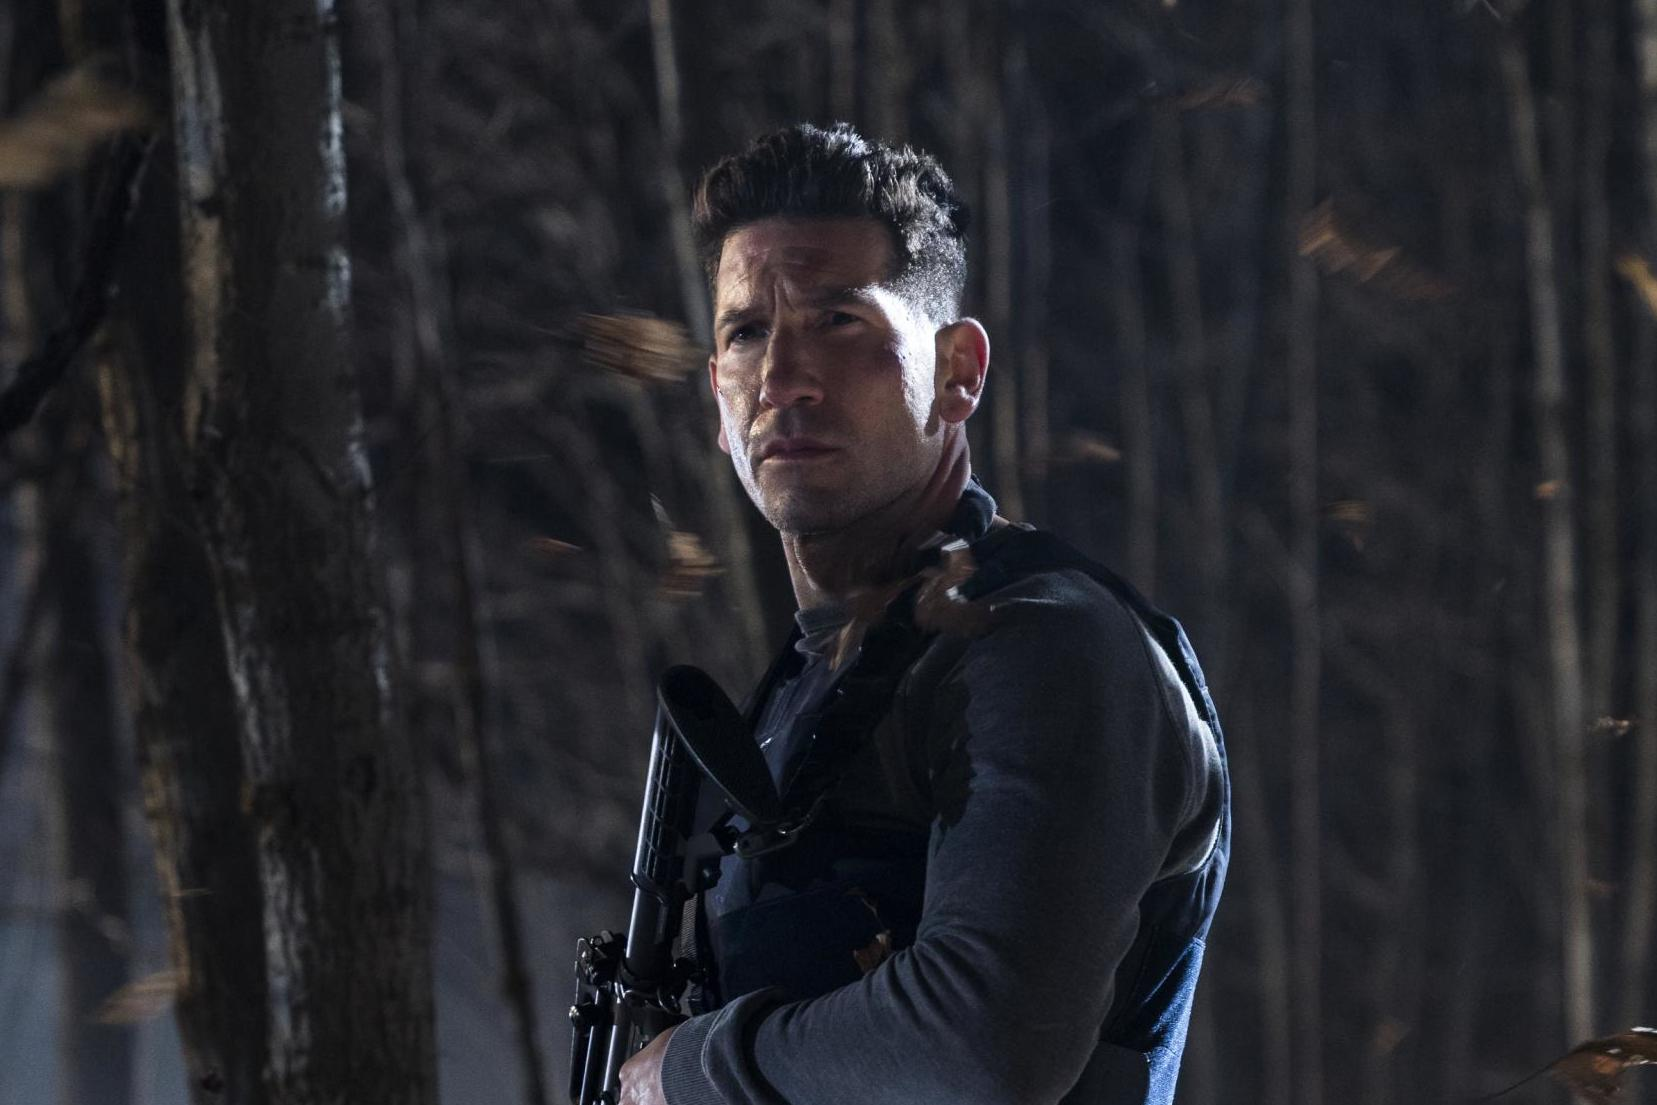 The Punisher - latest news, breaking stories and comment - The